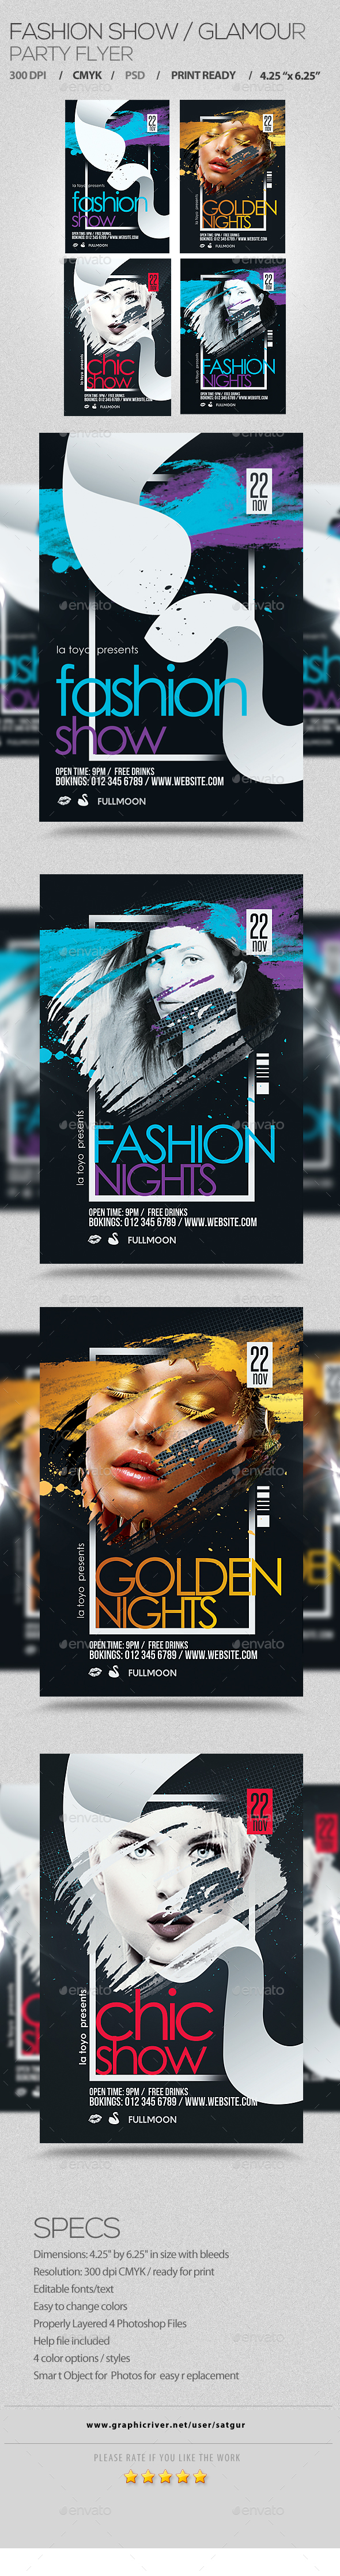 Fashion Show / Glamour Flyer - Clubs & Parties Events